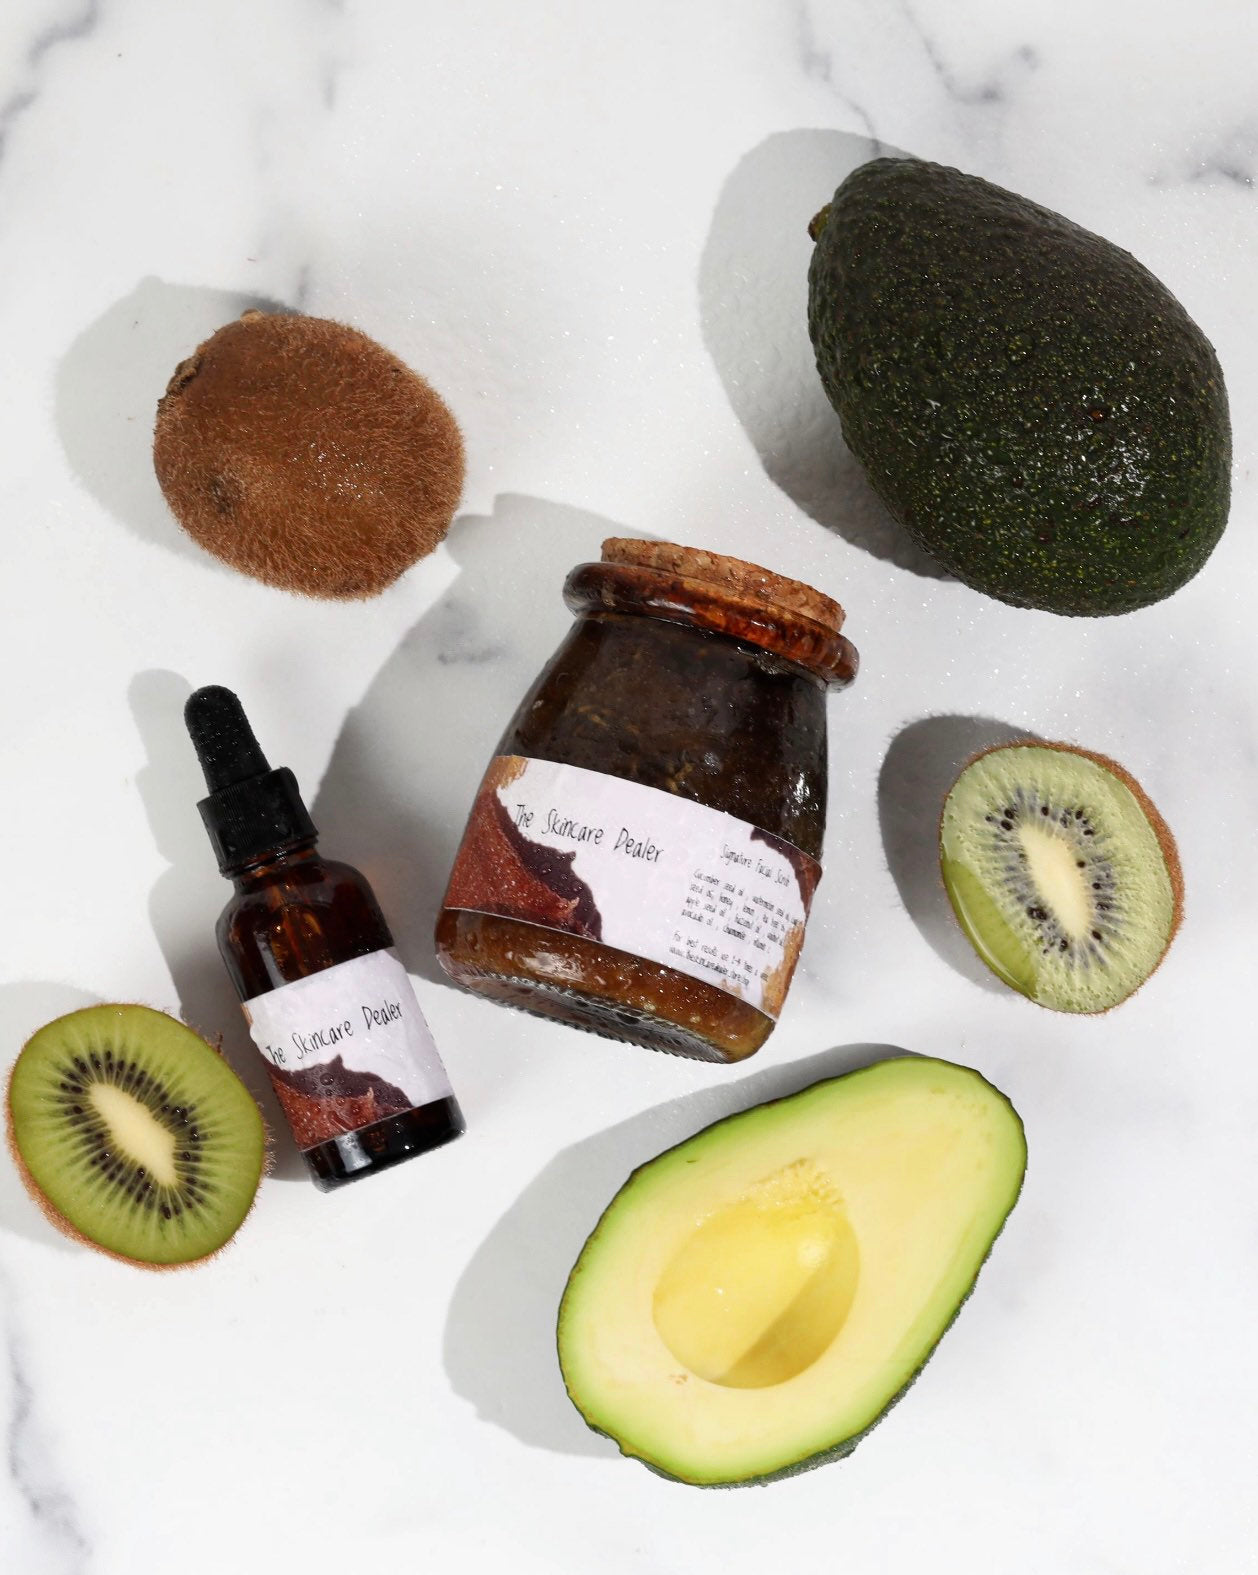 Signature Facial Scrub - Mineral Rich All In One Skin Solution! Microfine Gentle  Exfoliating Vegan Ginger Kiwi Avocado Cleanser - Hydrates - Moisturizes - Detoxes Pores - Clears Acne Scars -  Dark Spots - Keeps Skin Smooth